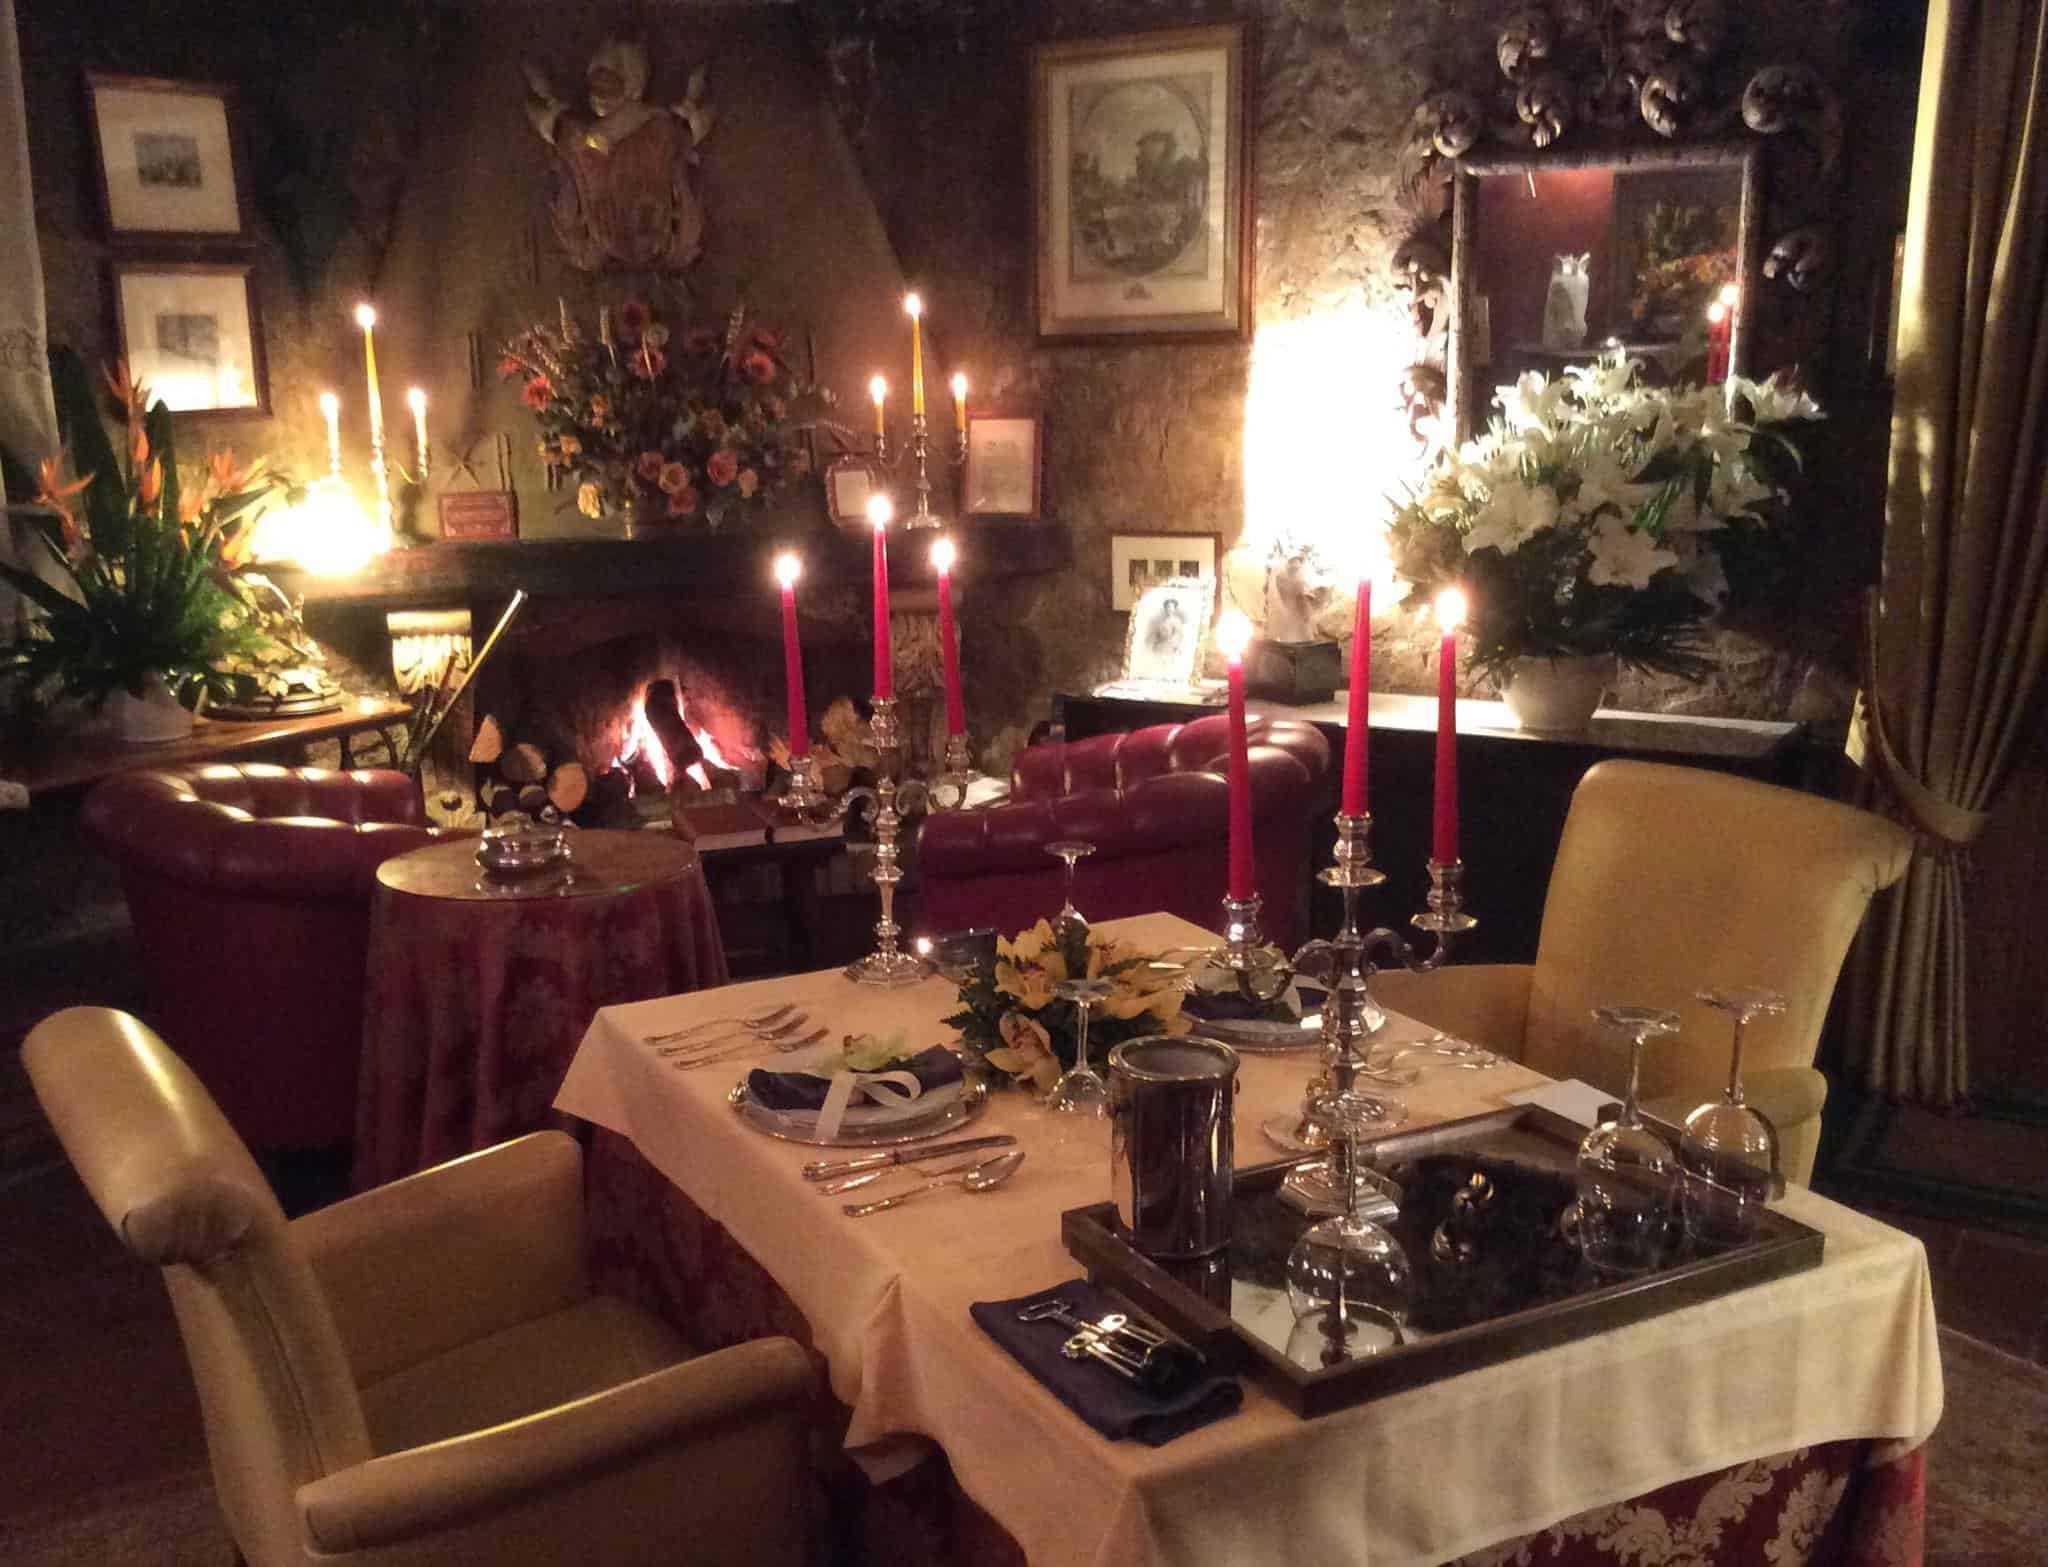 Candlelit table, with floral arrangements in the background